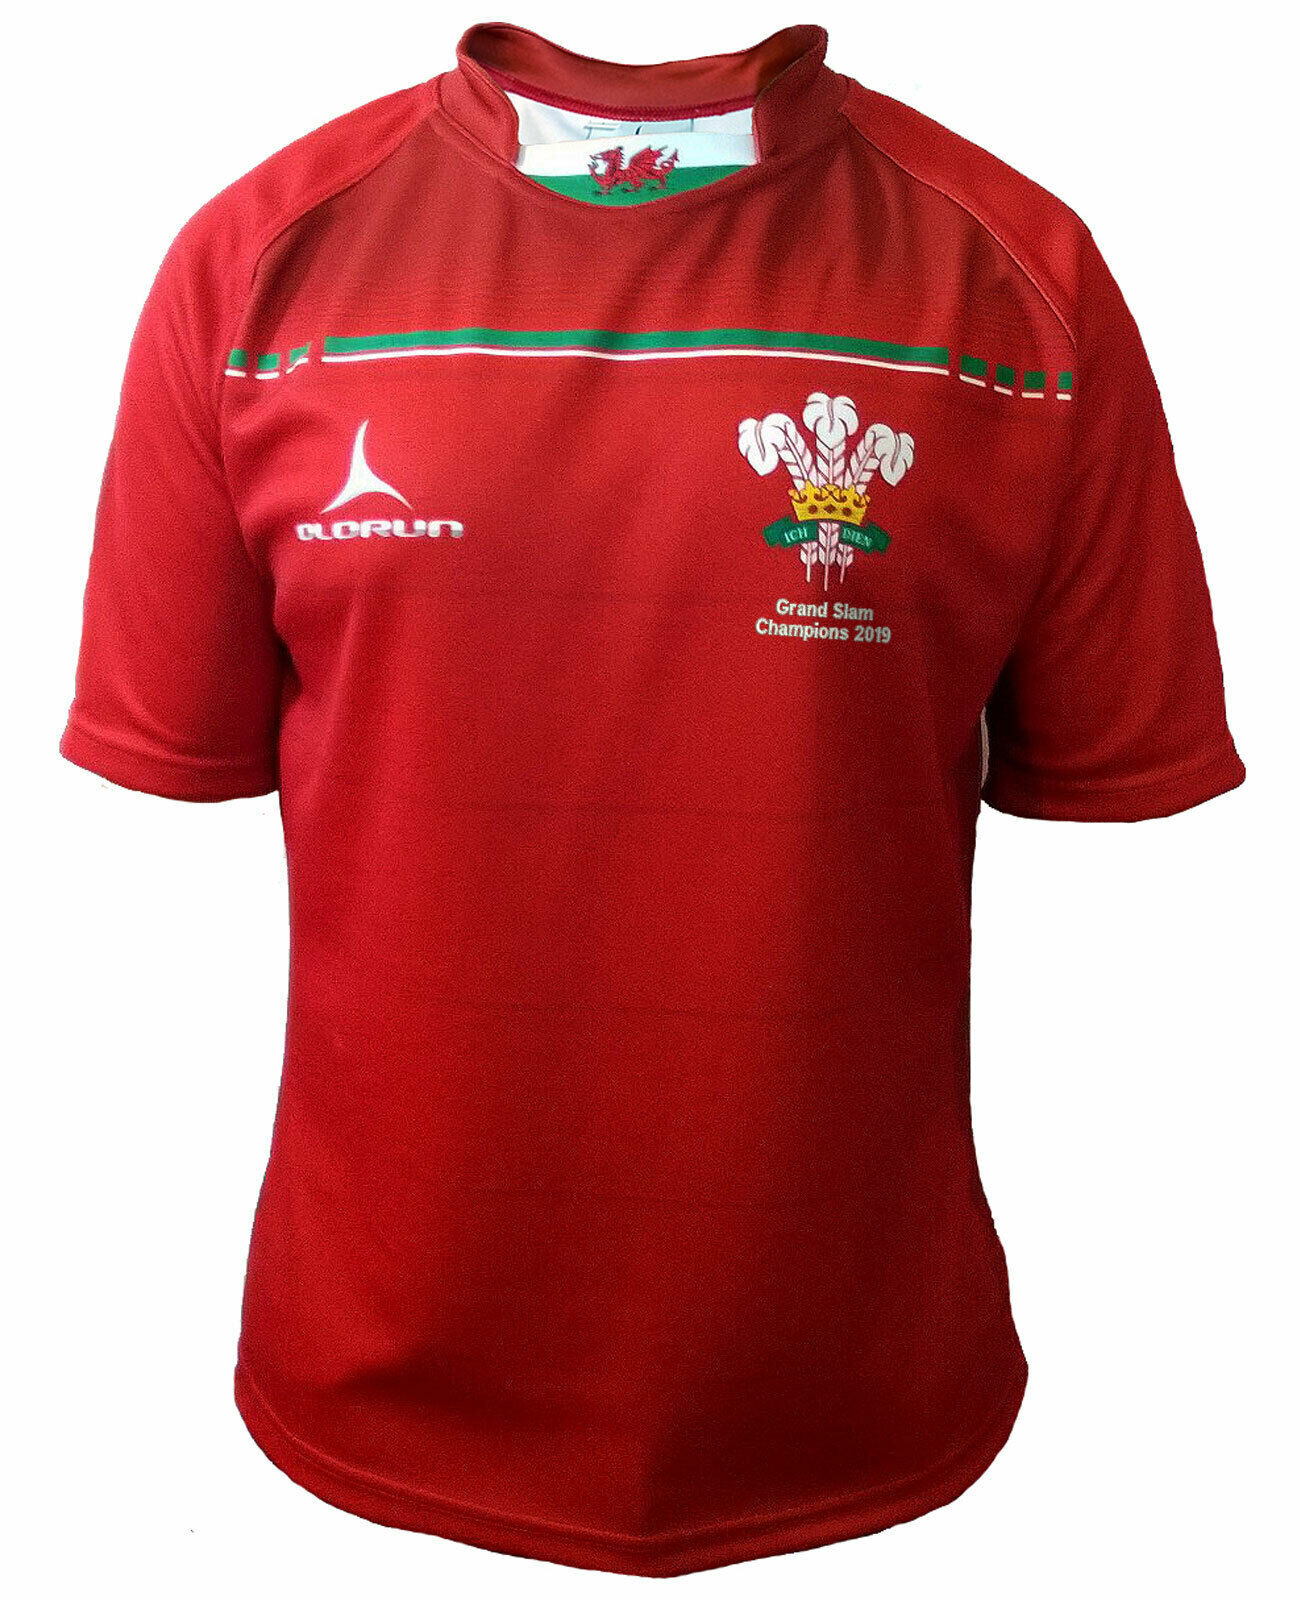 Olorun Wales Grand Slam 2019 Sublimated Rugby Shirt S-7XL